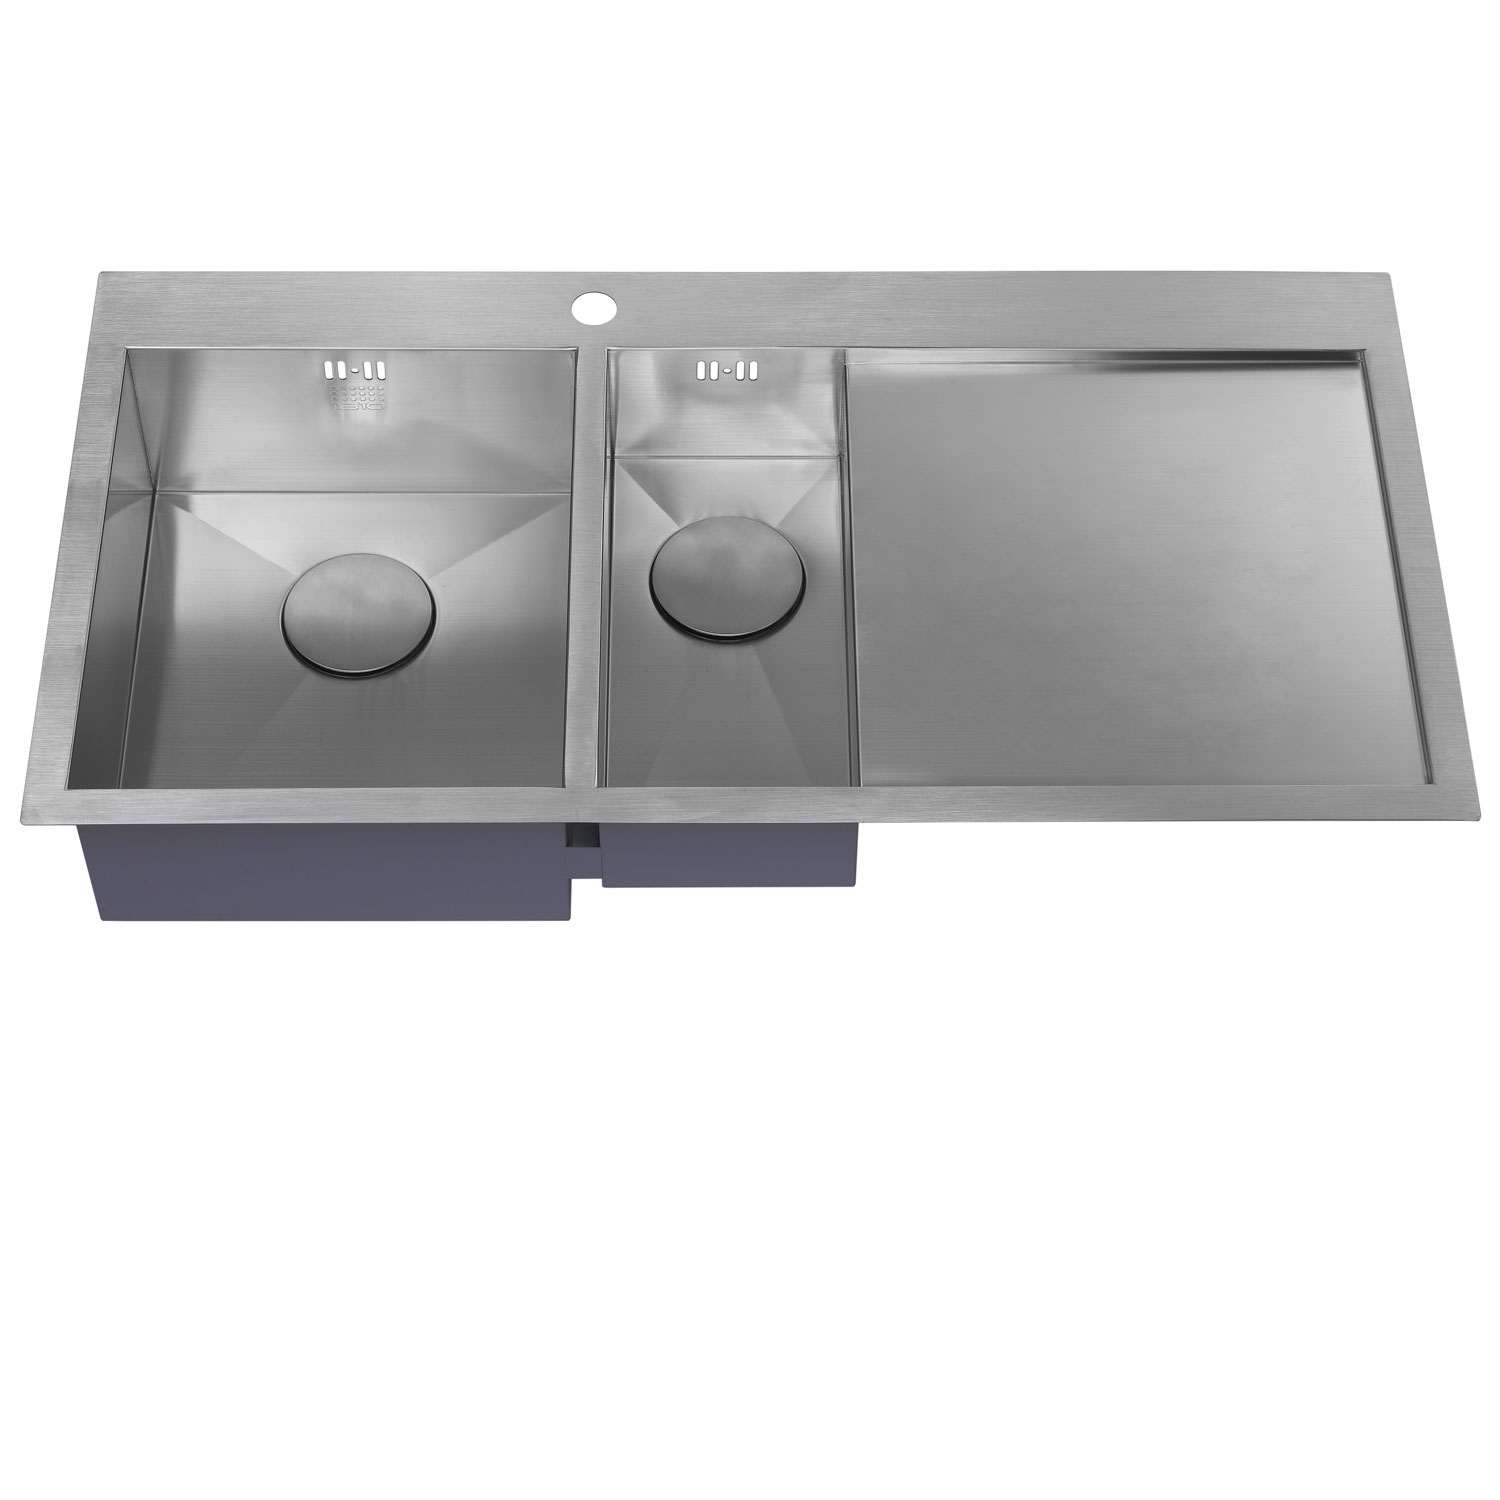 The 1810 Company Zenduo 6 I-F 1.5 Bowl Kitchen Sink - Left Hand-1